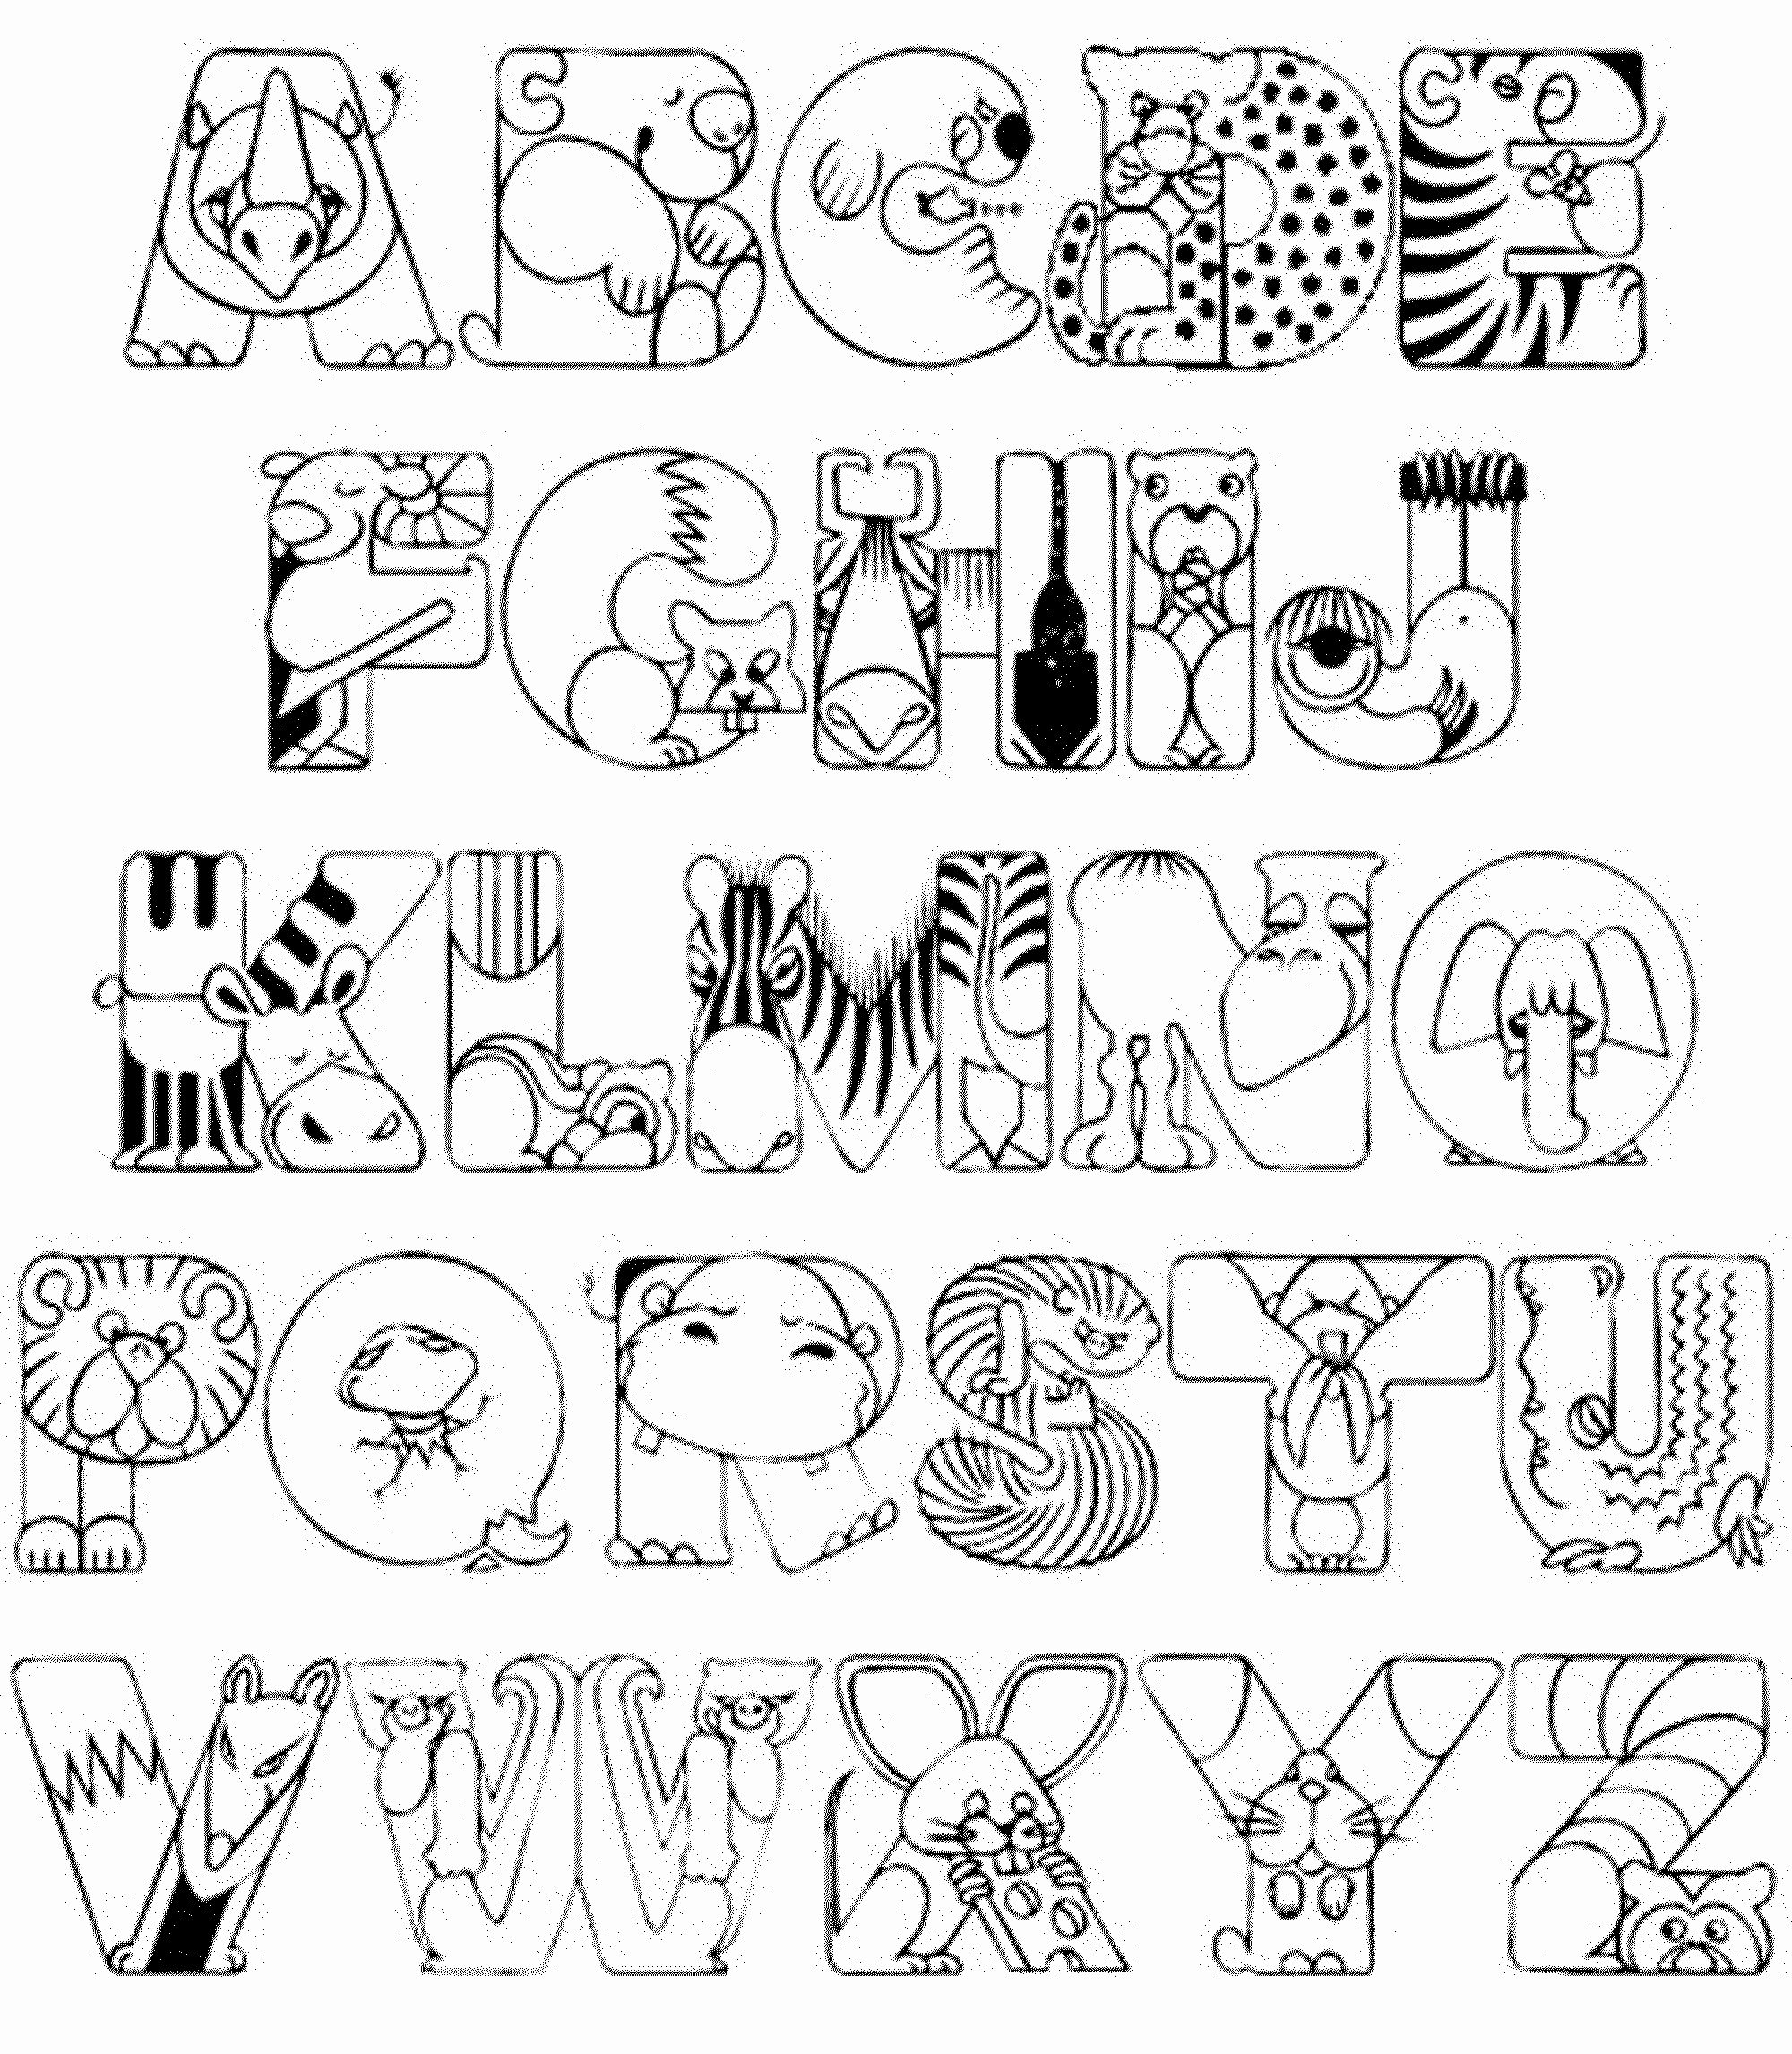 Toddler Learning Coloring Pages Inspirational Coloring Book Animal Coloring Pages For Toddlers In 2020 Kindergarten Coloring Pages Abc Coloring Pages Abc Coloring